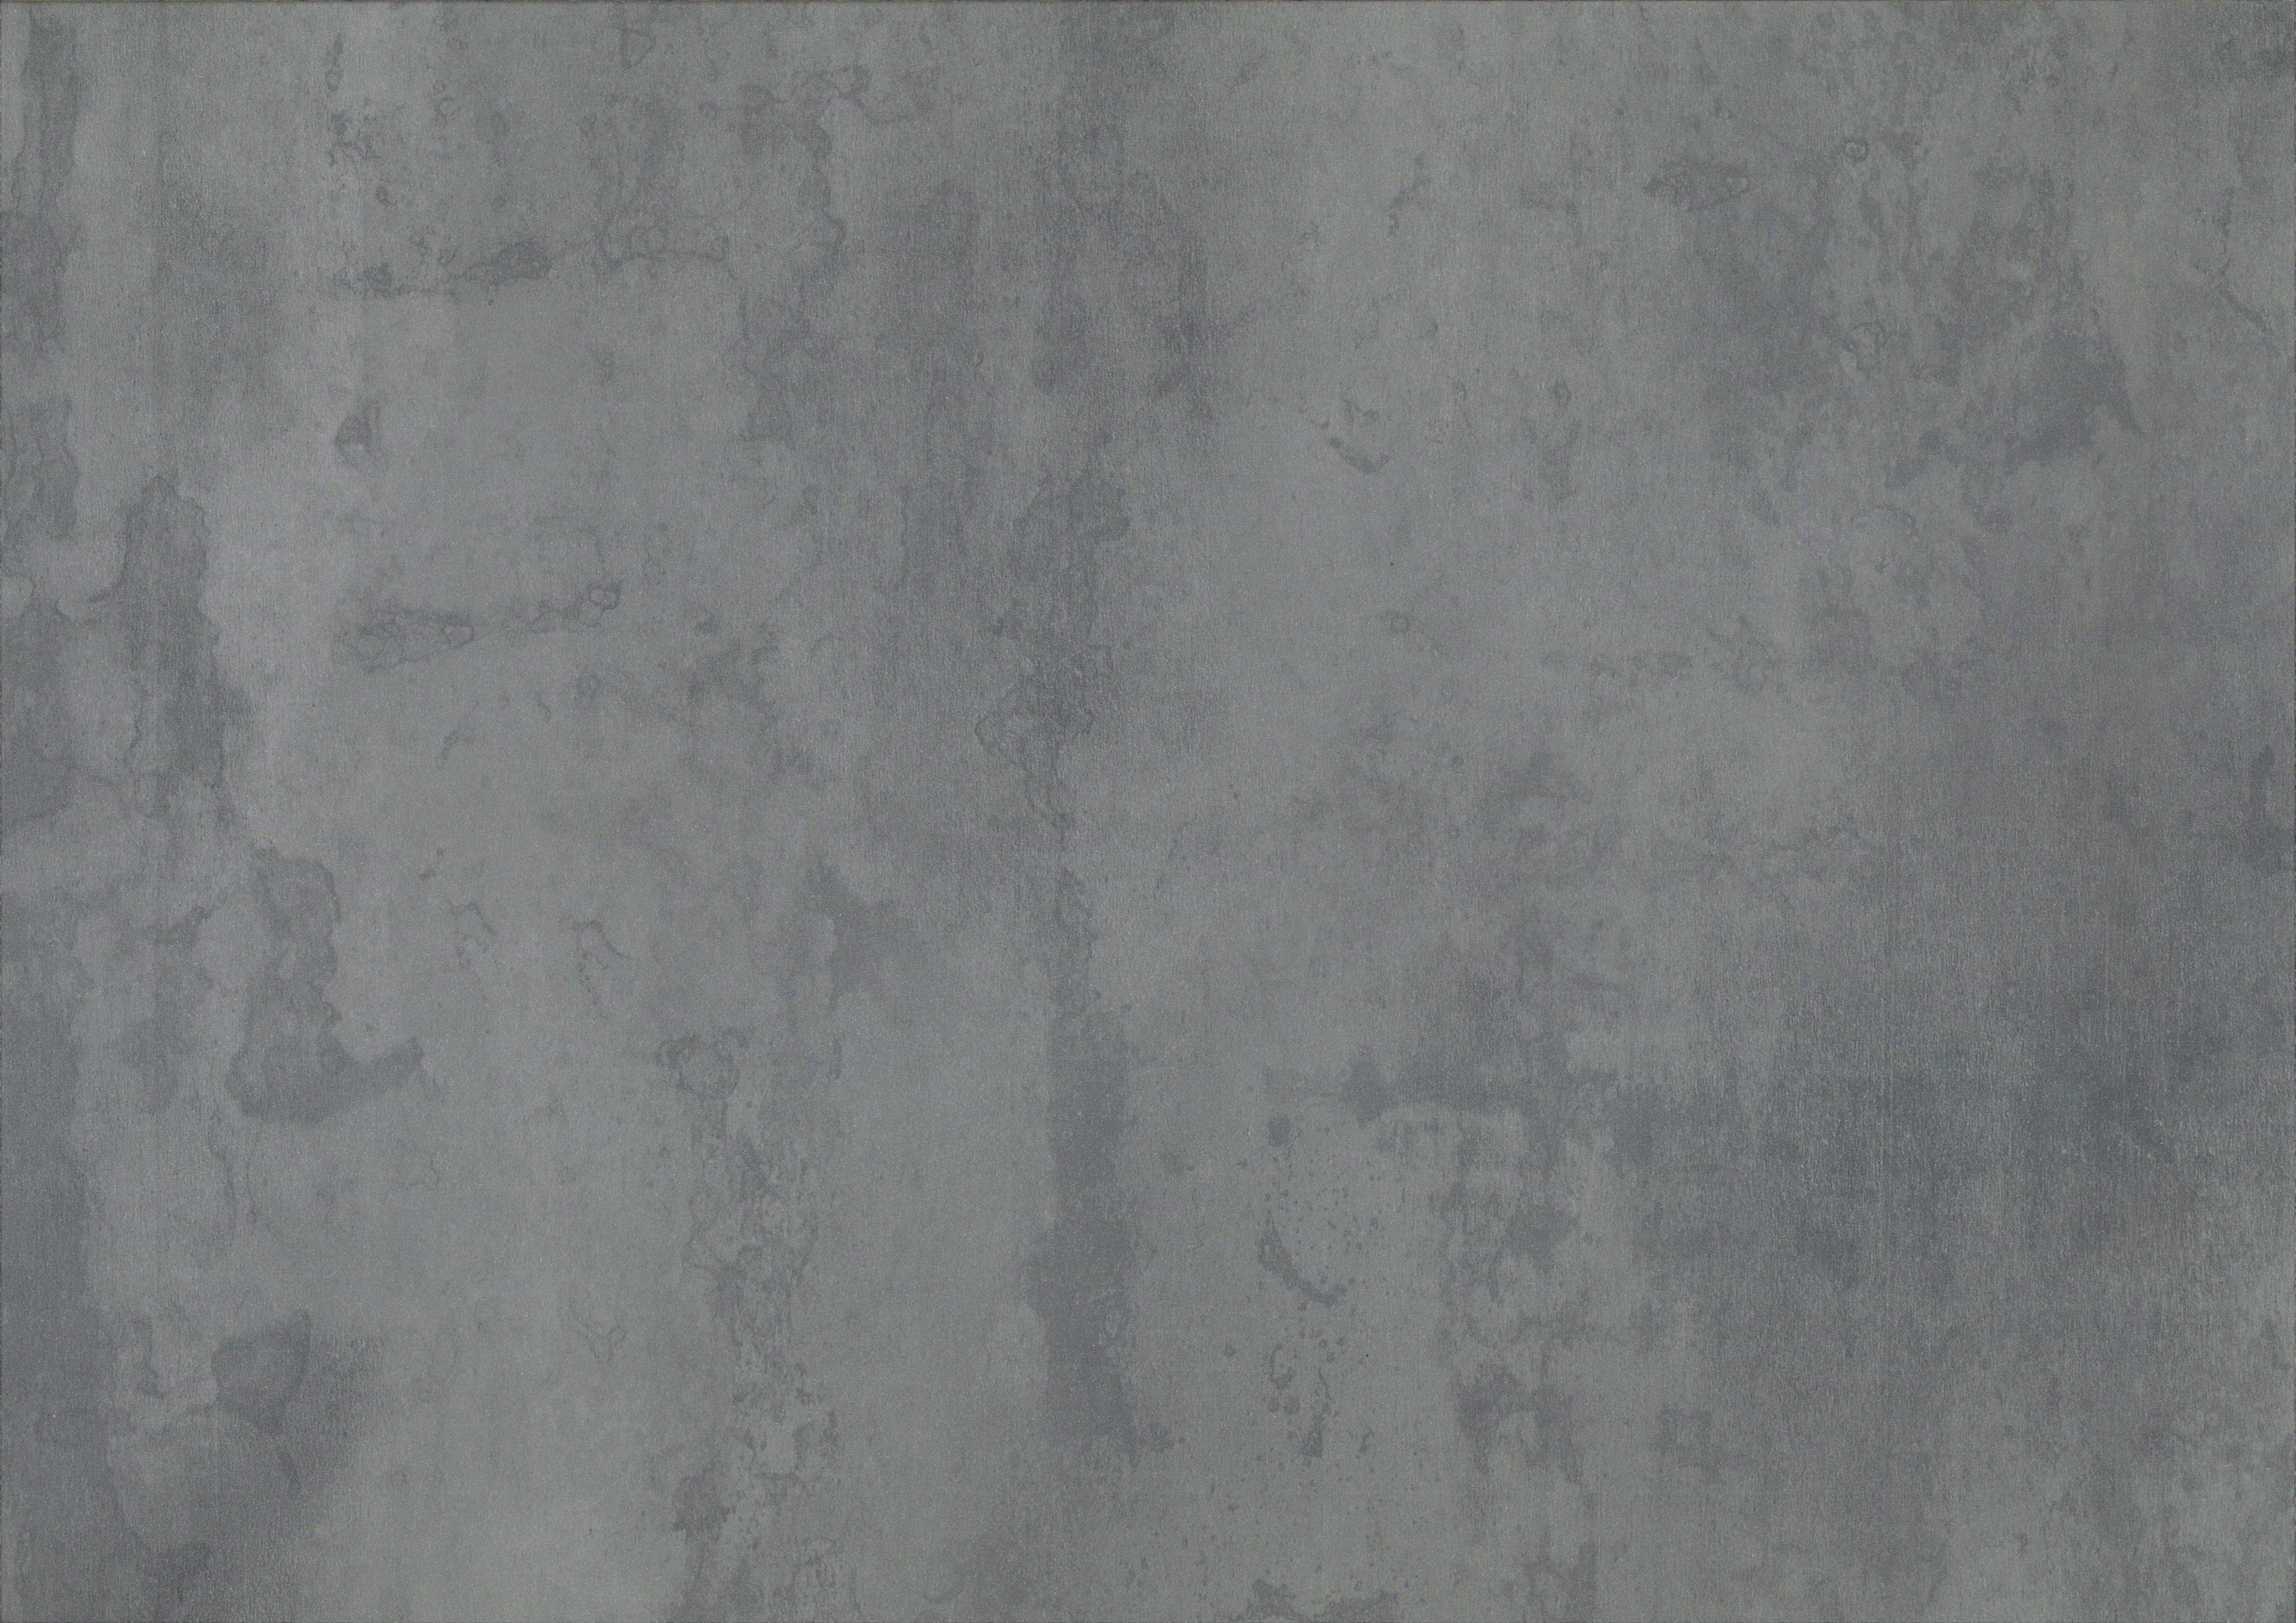 BAL 3413 DM - Tratti Concrete Gray High Pressure Laminate